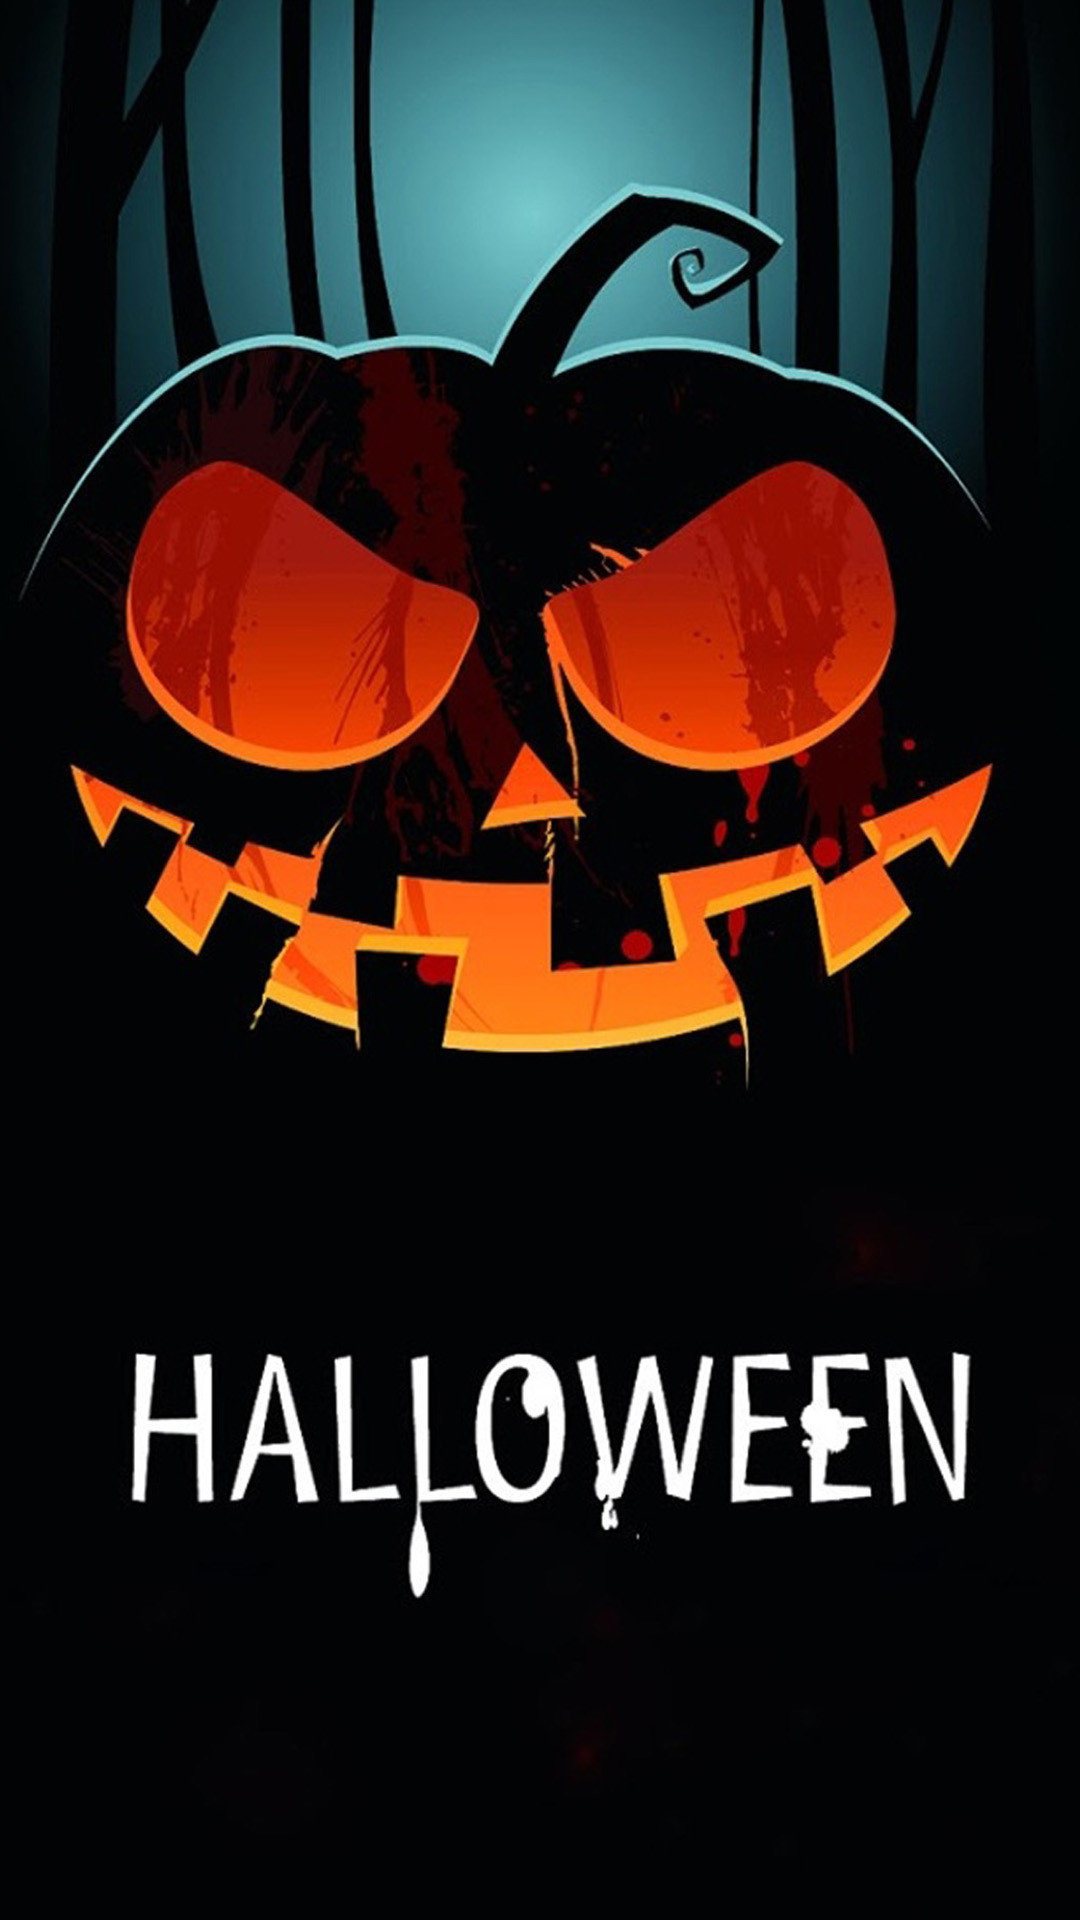 5 Free Halloween Live Wallpapers For Android – YouTube